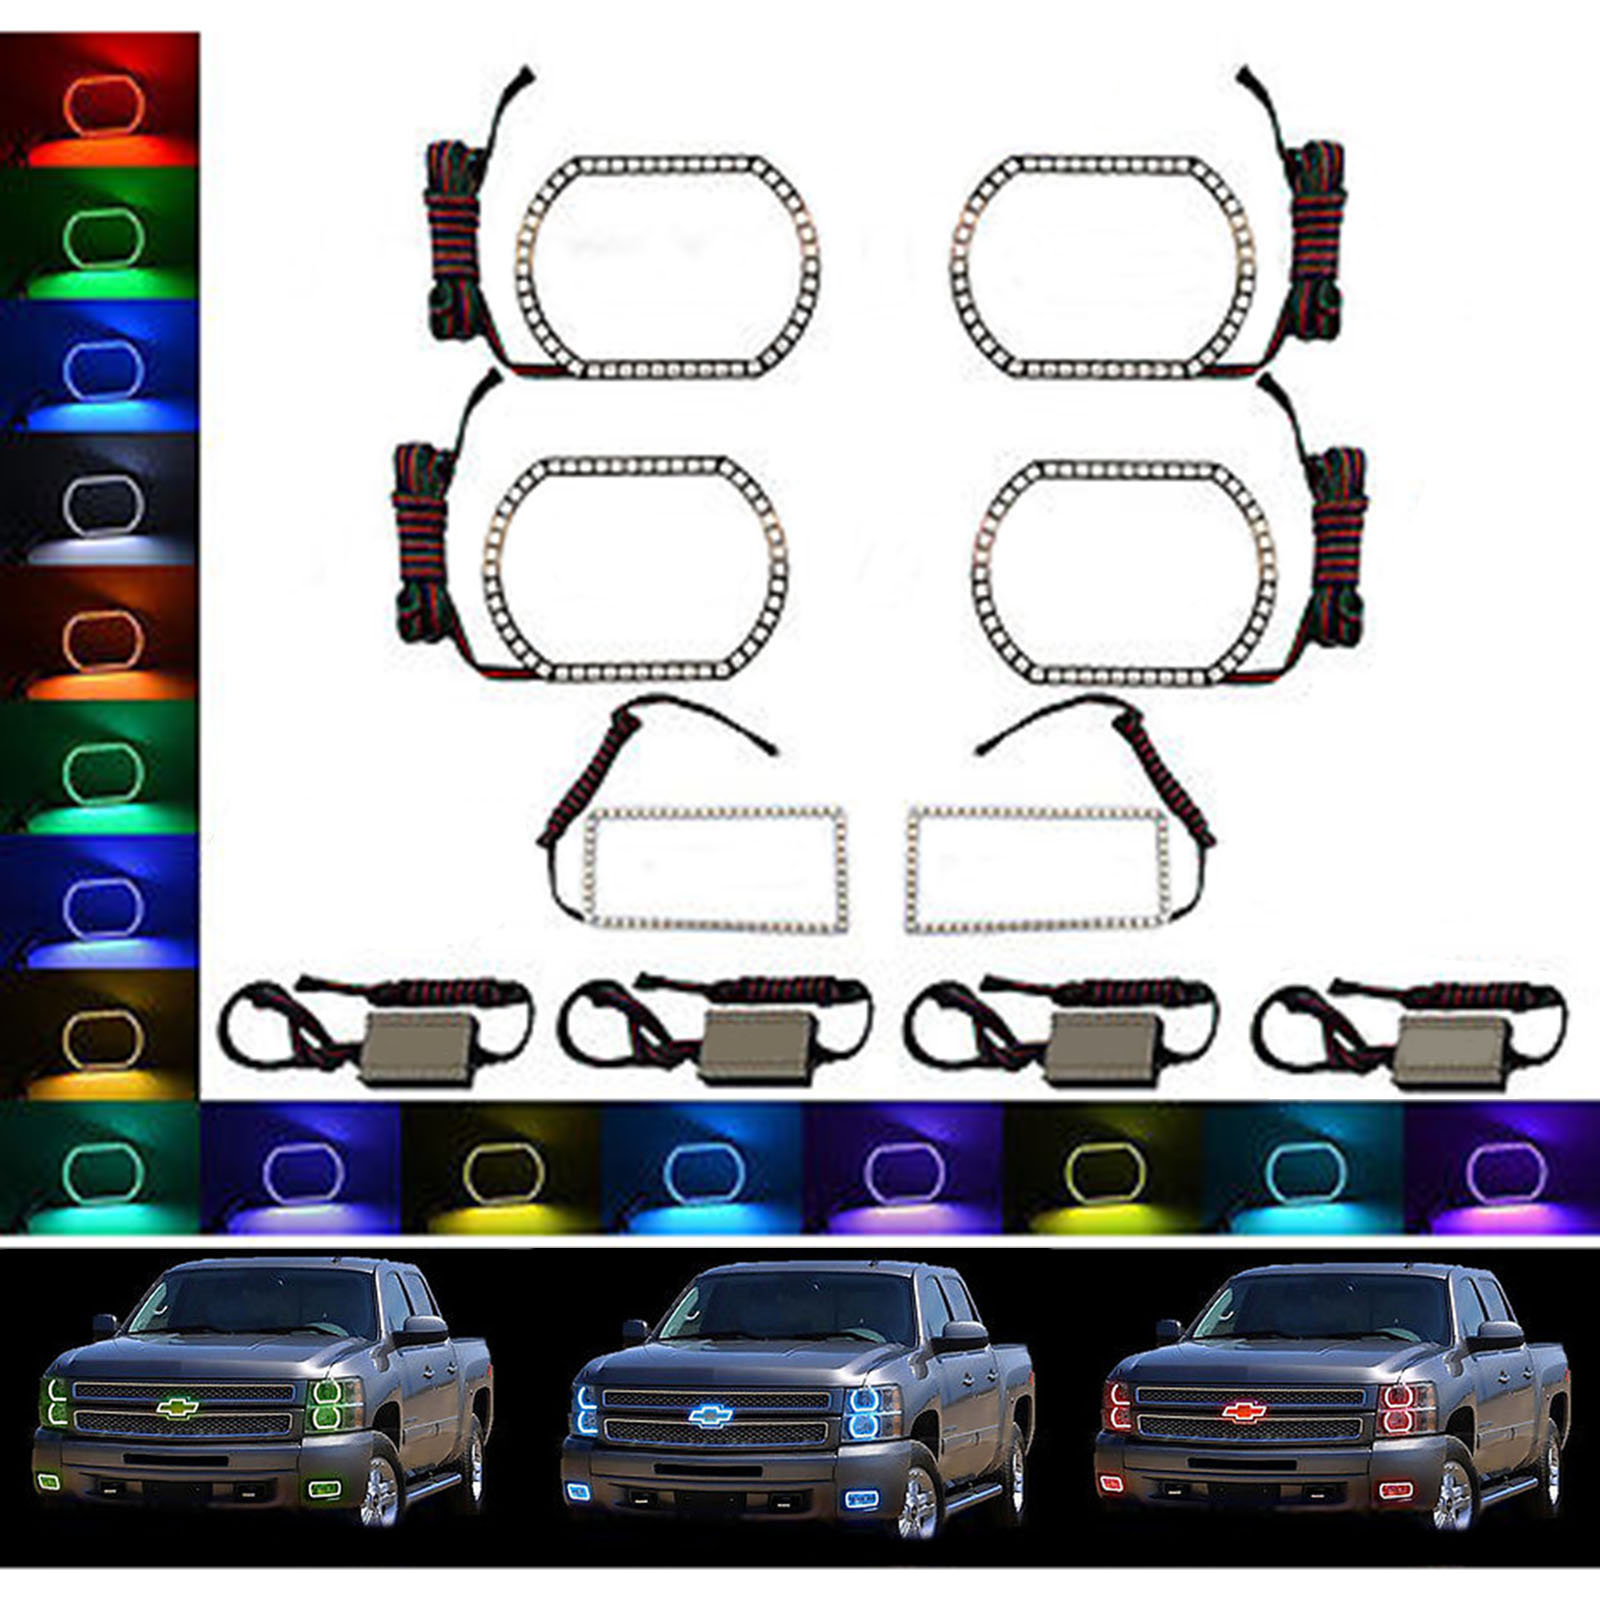 Details about 11-11 Chevy Silverado Multi-Color Changing LED Headlight Fog  Light Halo Ring Set | multi chevrolet